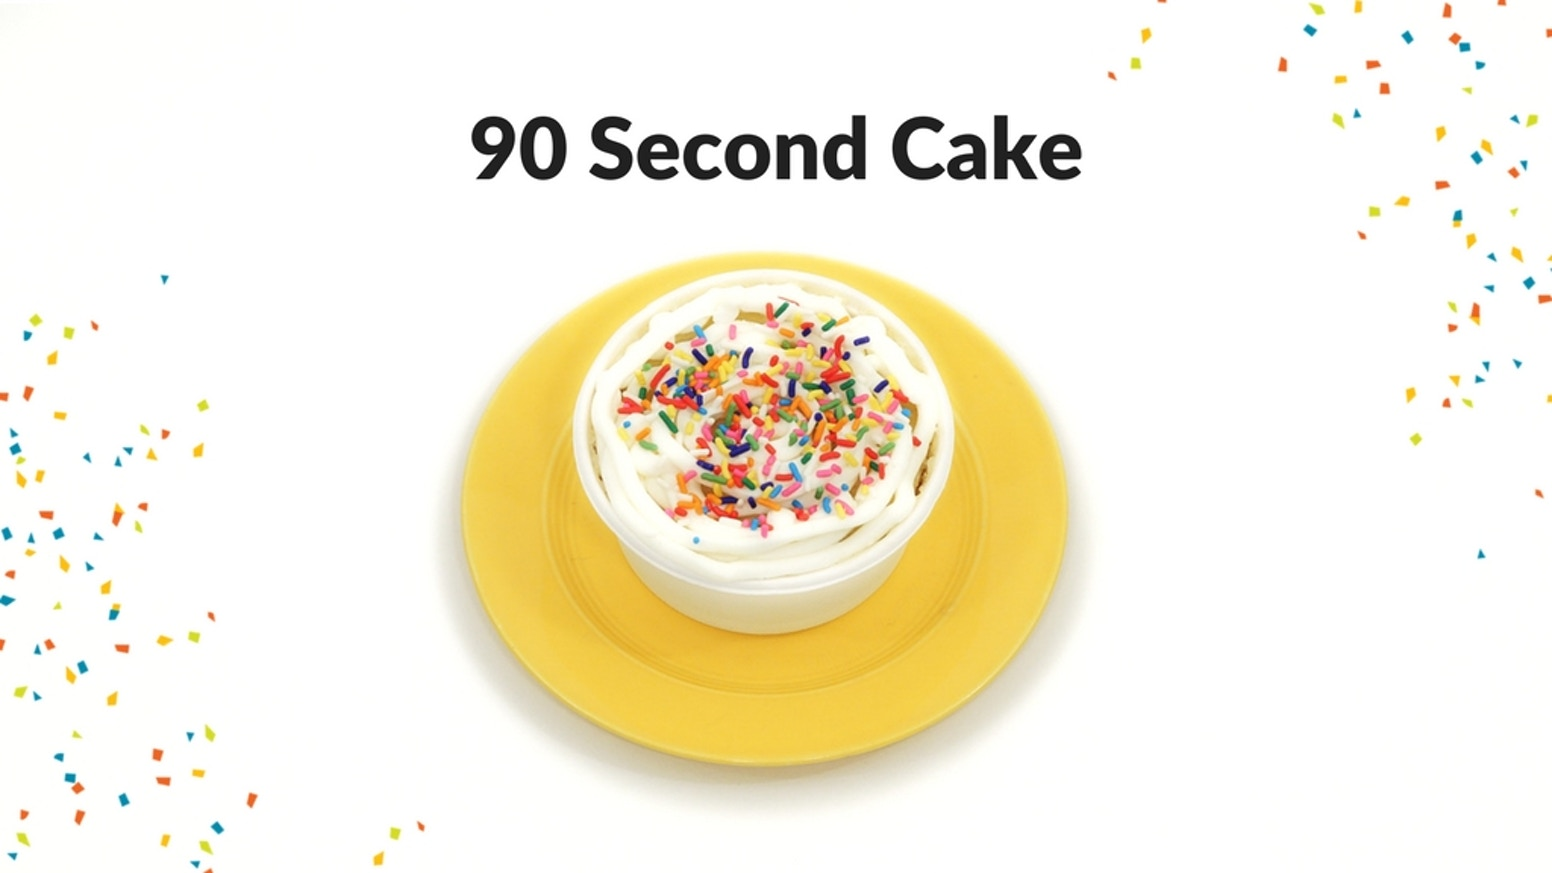 Enjoy the fun and magical experience of making a warm and delicious cake in only 90 seconds!